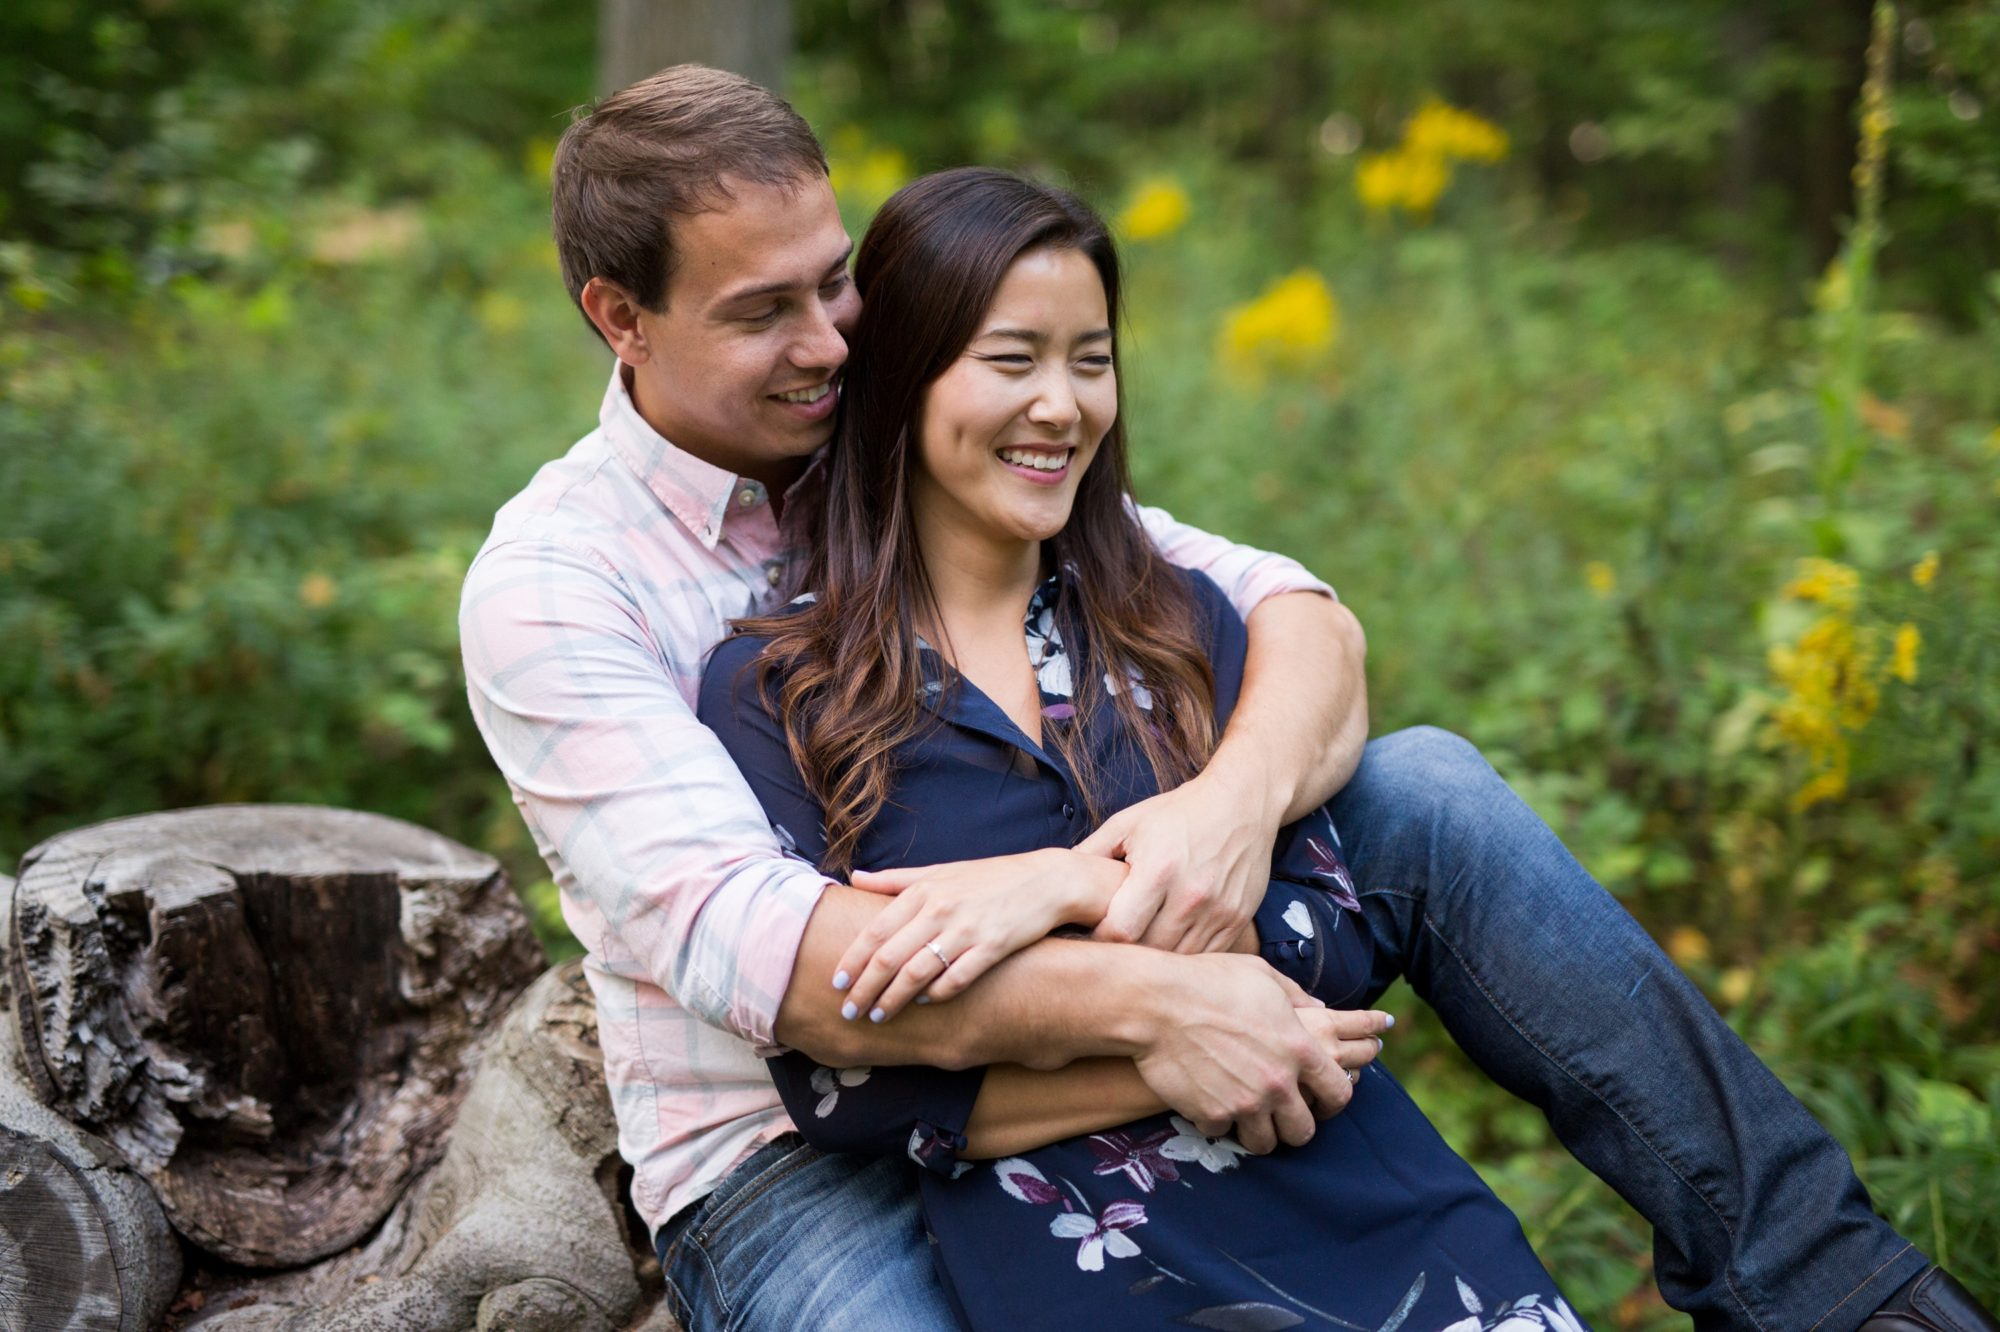 Cute Couple Engagement Session, Sheppard's Bush, Zsuzsi Pal Photography